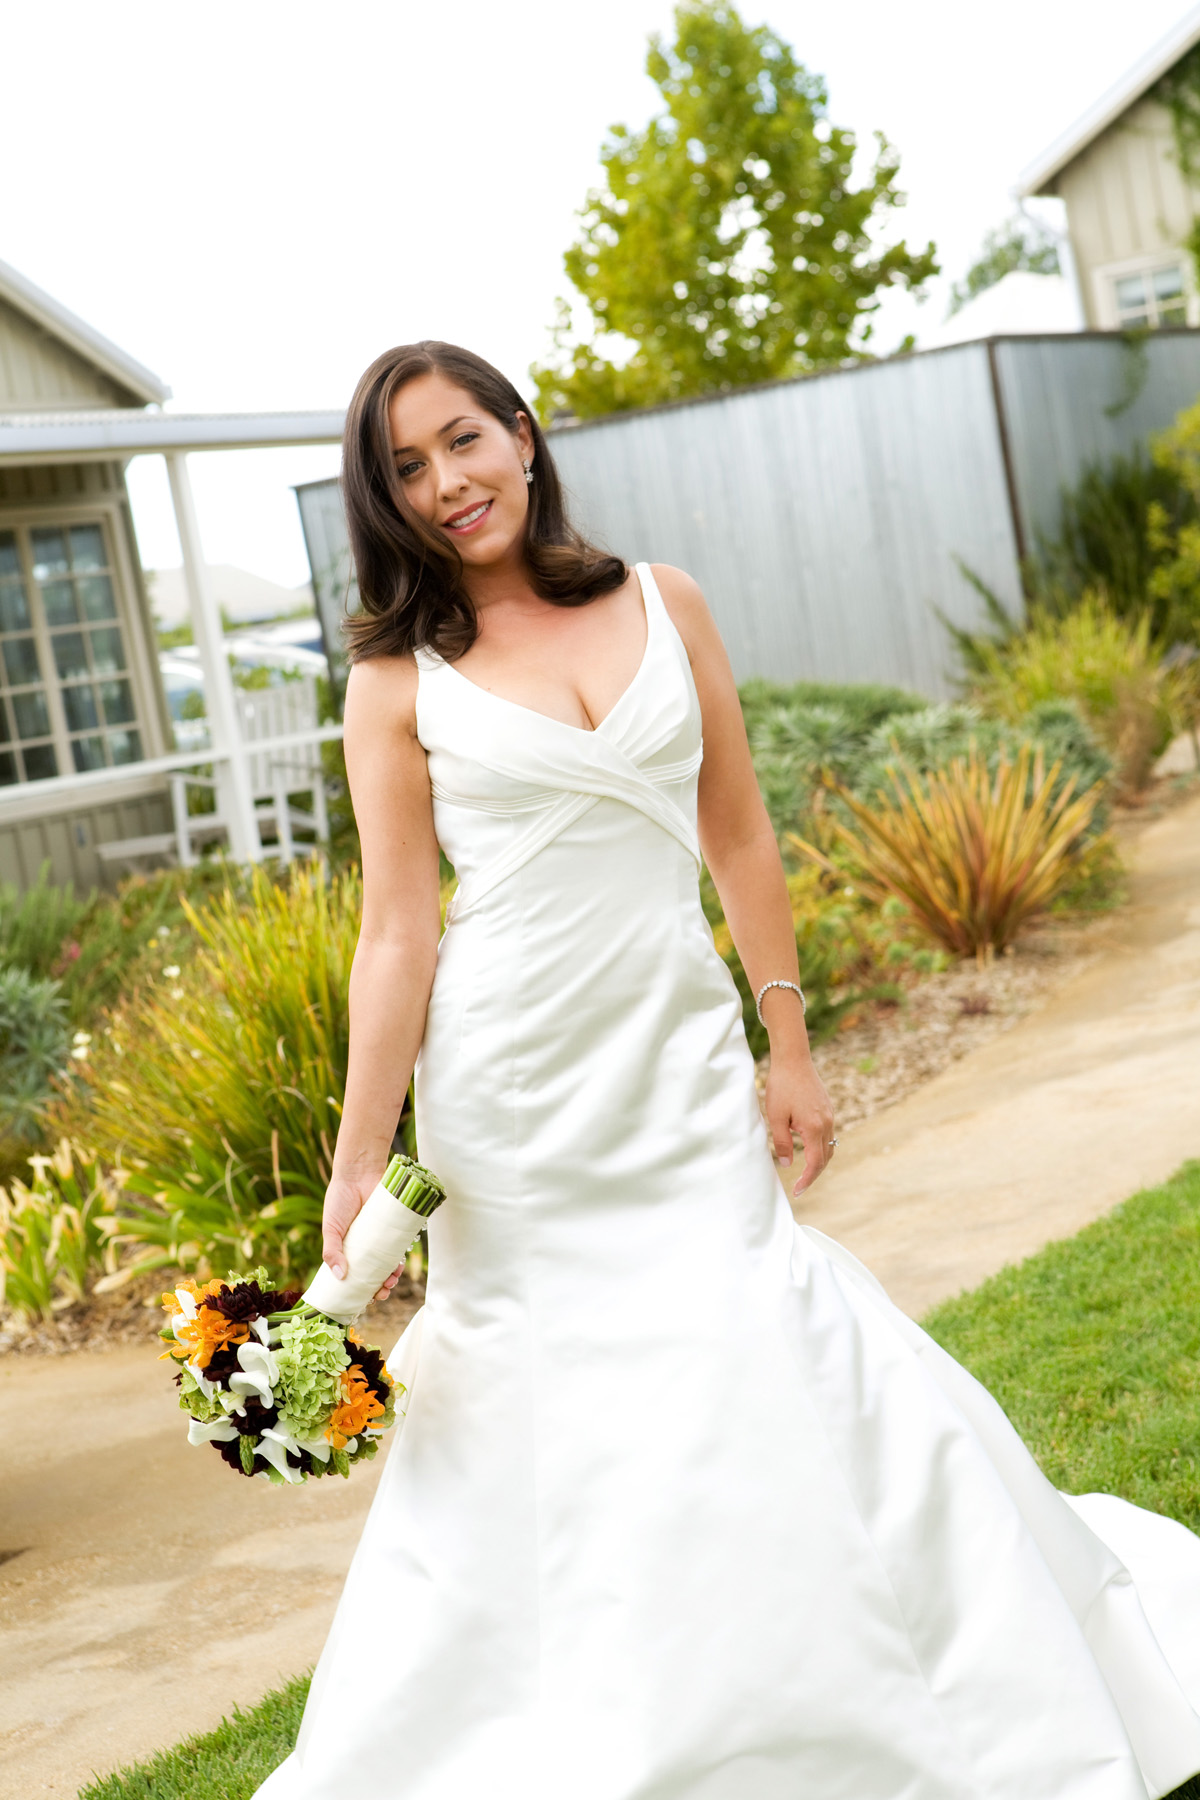 Carneros-Inn-Classic-Wedding-Beauty.jpg